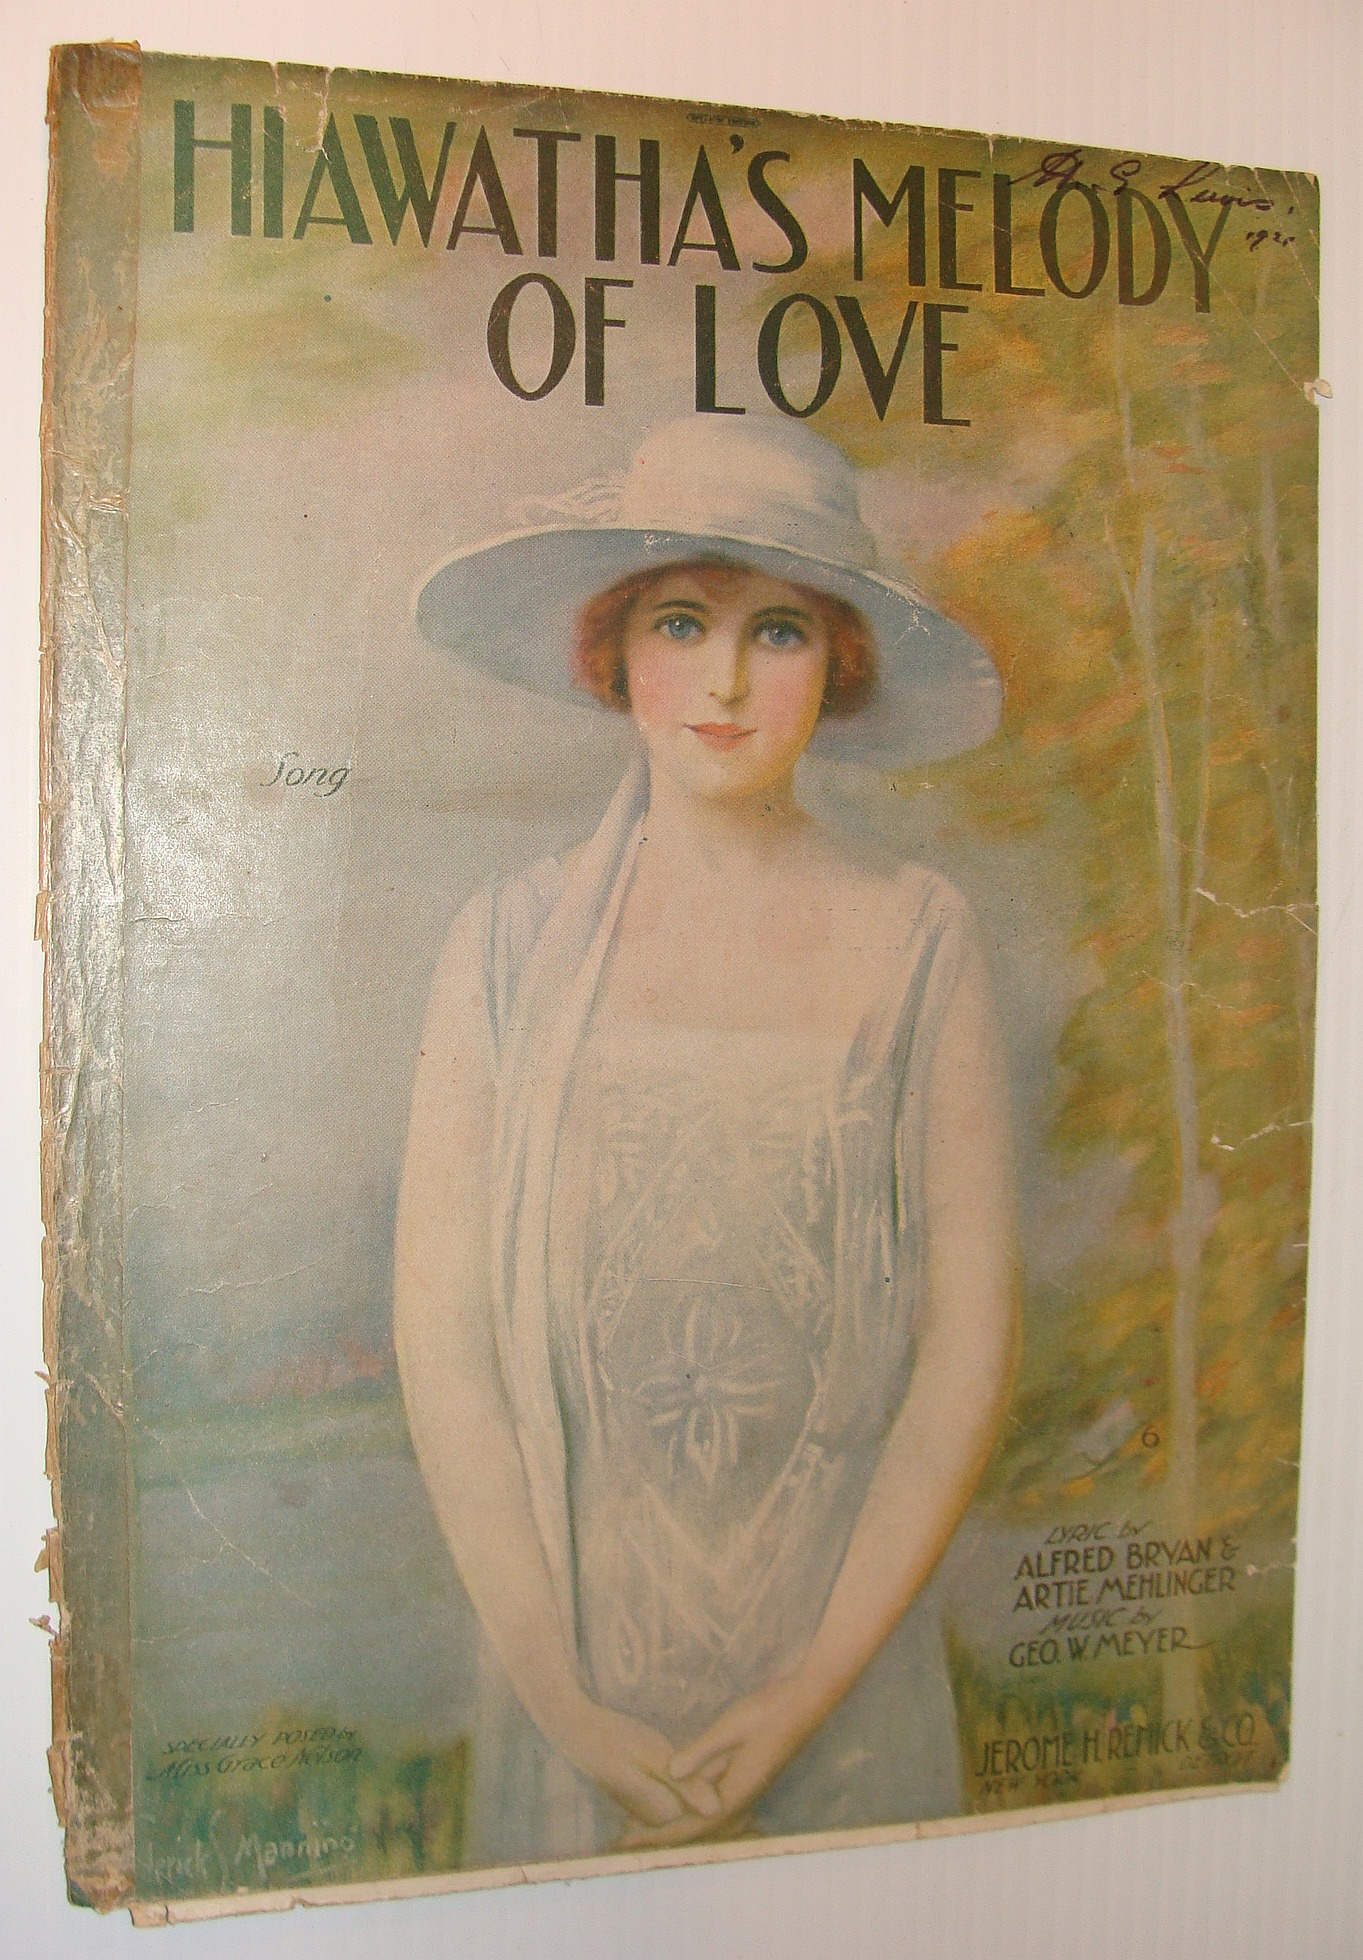 Hiawatha's Meloday of Love - Sheet Music, Bryan, Alfred; Mehlinger, Artie; Meyer, George W.